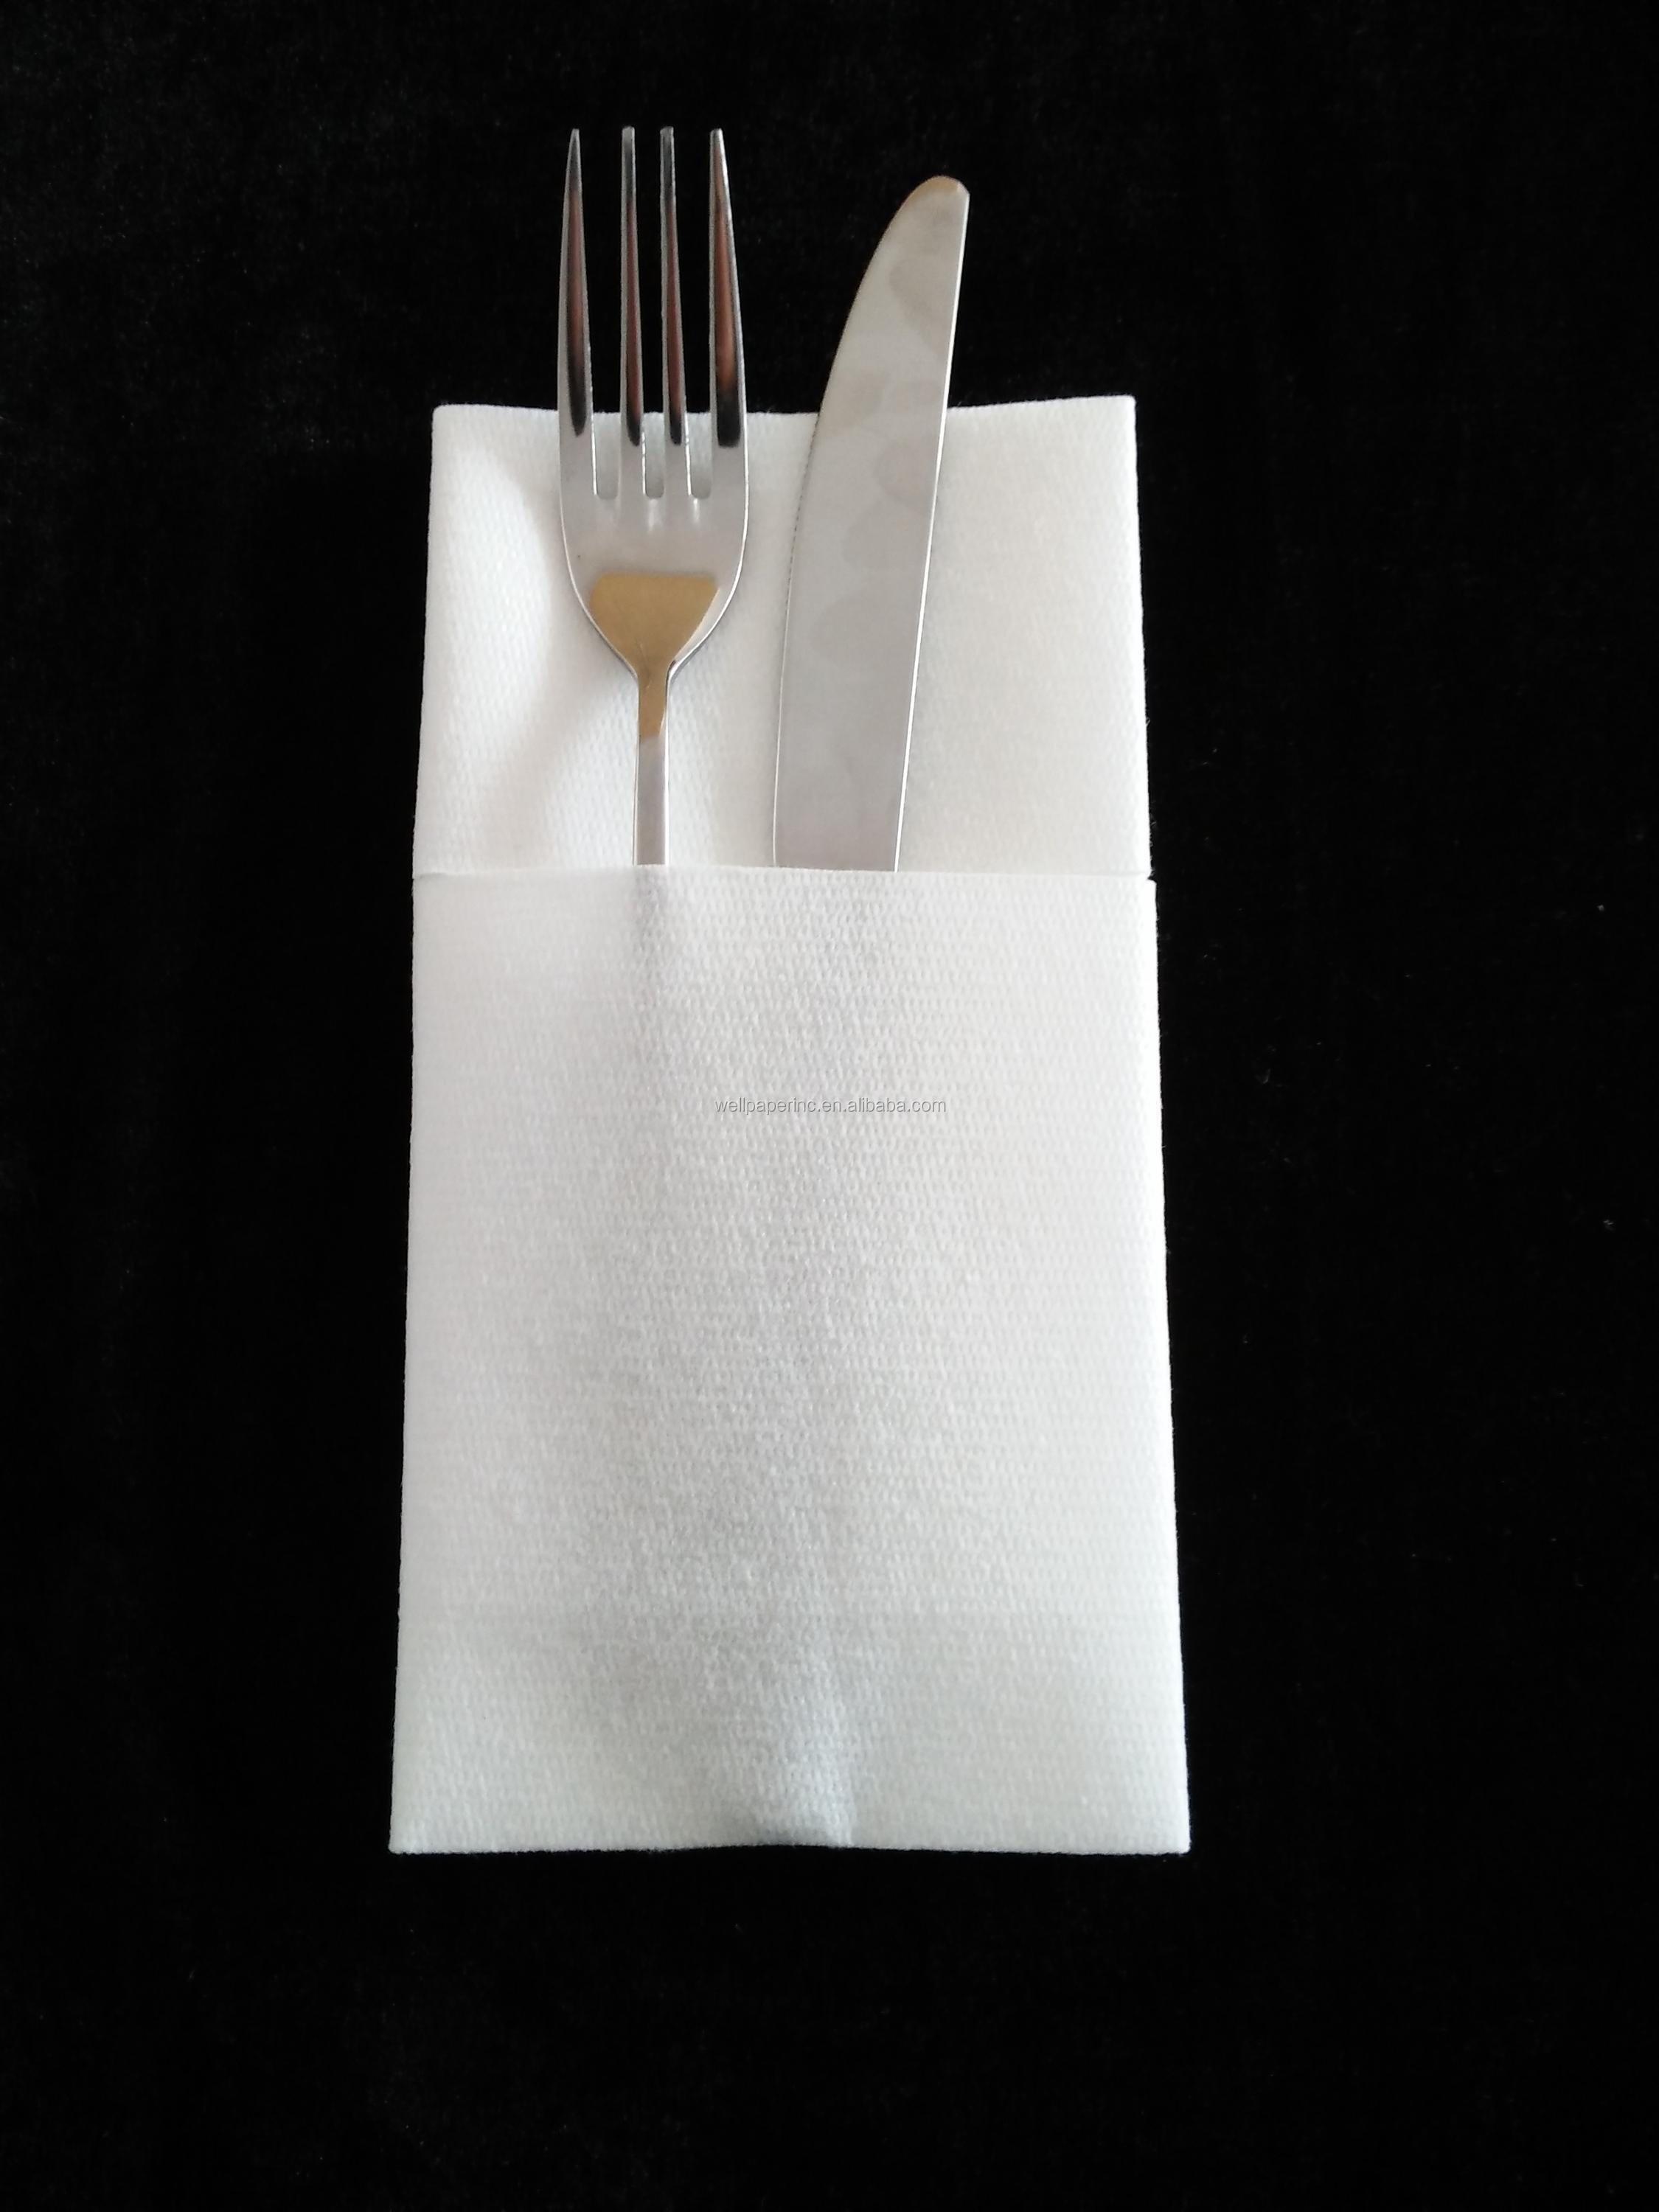 16 Inch 16 Inch 1 8 Fold Biodegradable Disposable Logo Printed Airlaid Cutlery Bag Napkin Buy Airlaid Paper Napkin With Cutlery Paper Bag Disposable Printed Napkin And Cutlery Paper Pocket Biodegradable Cutlery Napkin Product